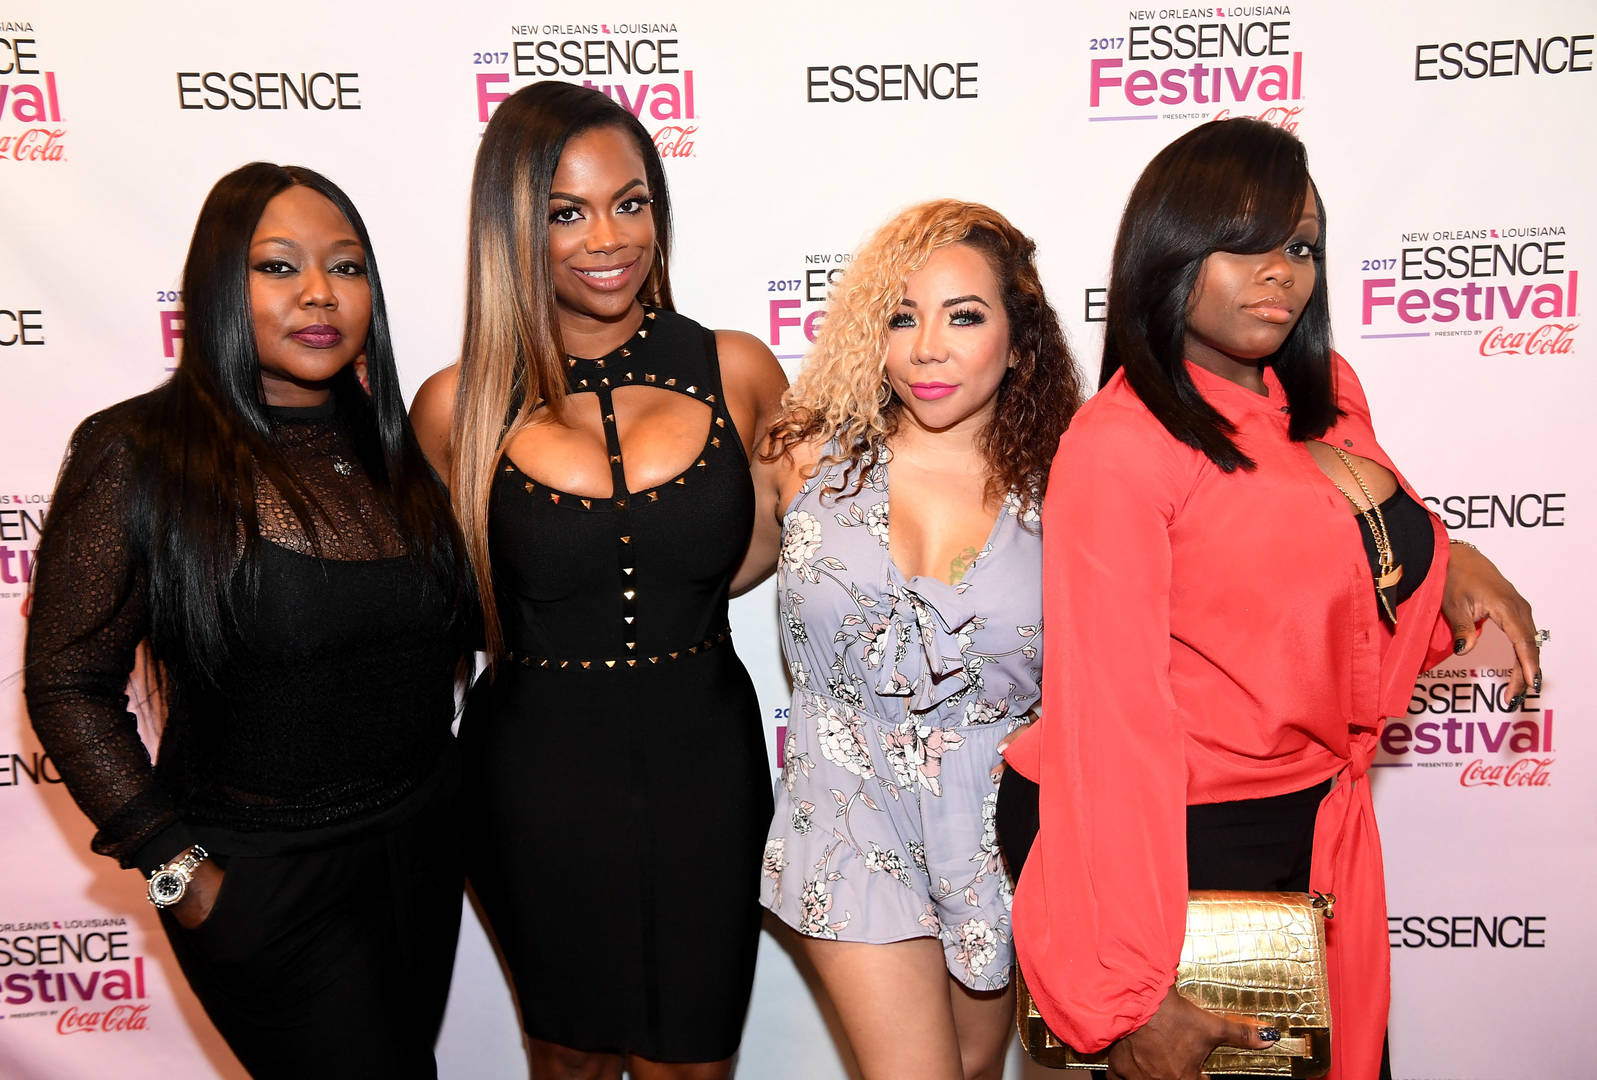 Xscape, Tiny, Kandi Burruss, TI, Allegations, Sexual Misconduct, Watch What Happens Live